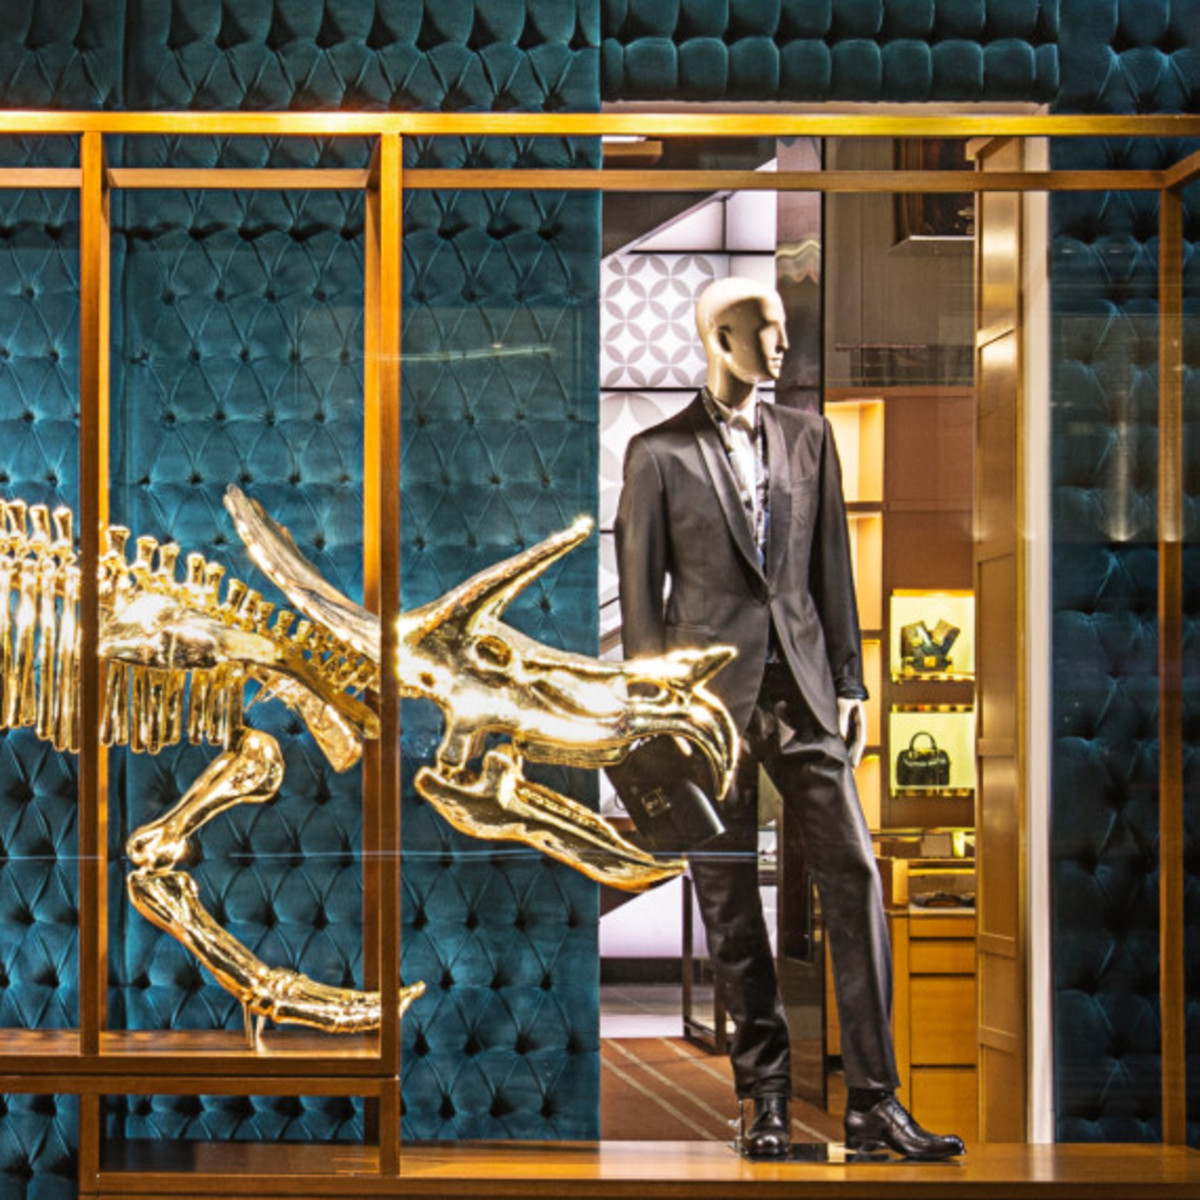 Dinosaurs Invade Louis Vuitton's 5th Avenue Maison Windows | NYC - 2